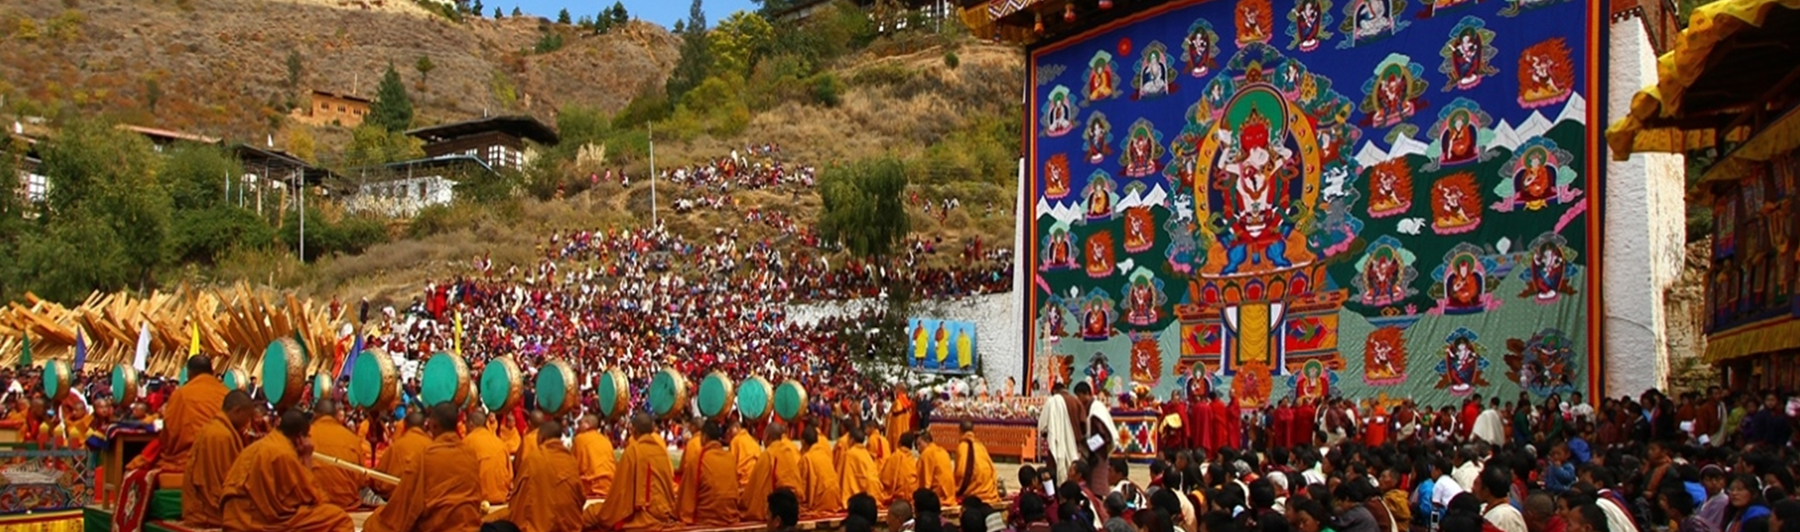 Paro Tshechu Festival Bhutan 2020 | Things to Do & See